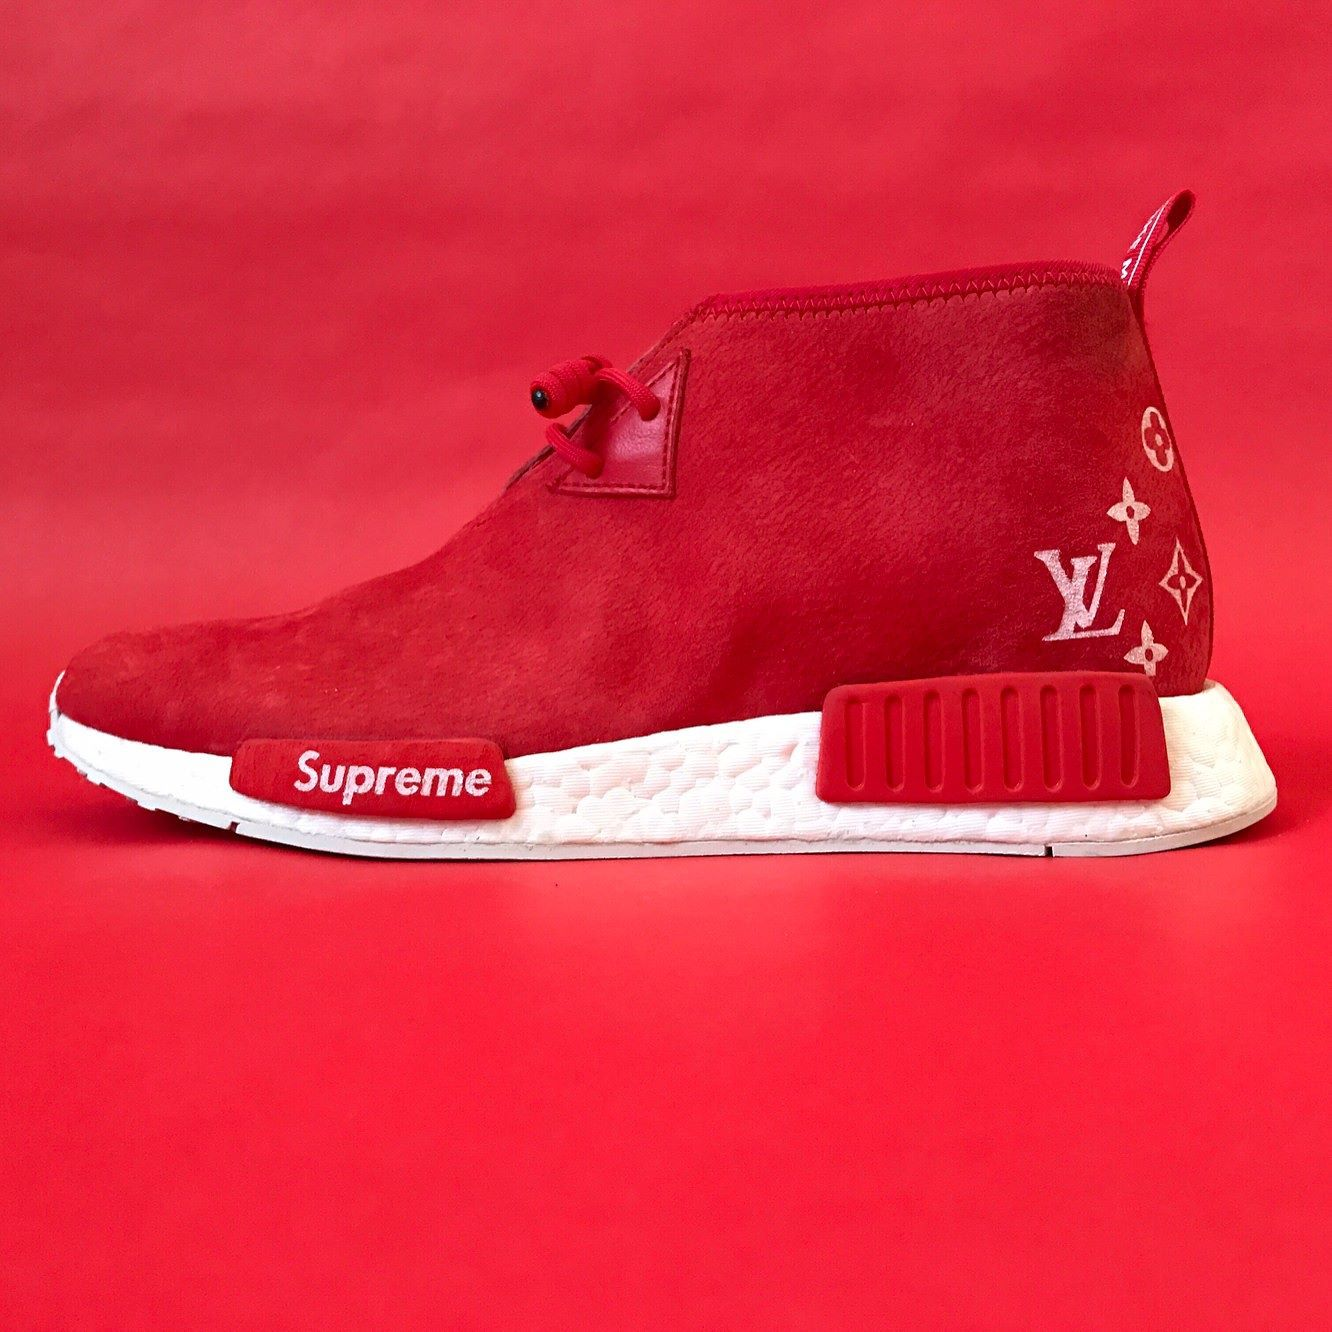 brand new 1dc01 1c2f6 NMD C1_S/LV Supreme x Louis Vuitton NMD C1 Custom | Photo ...